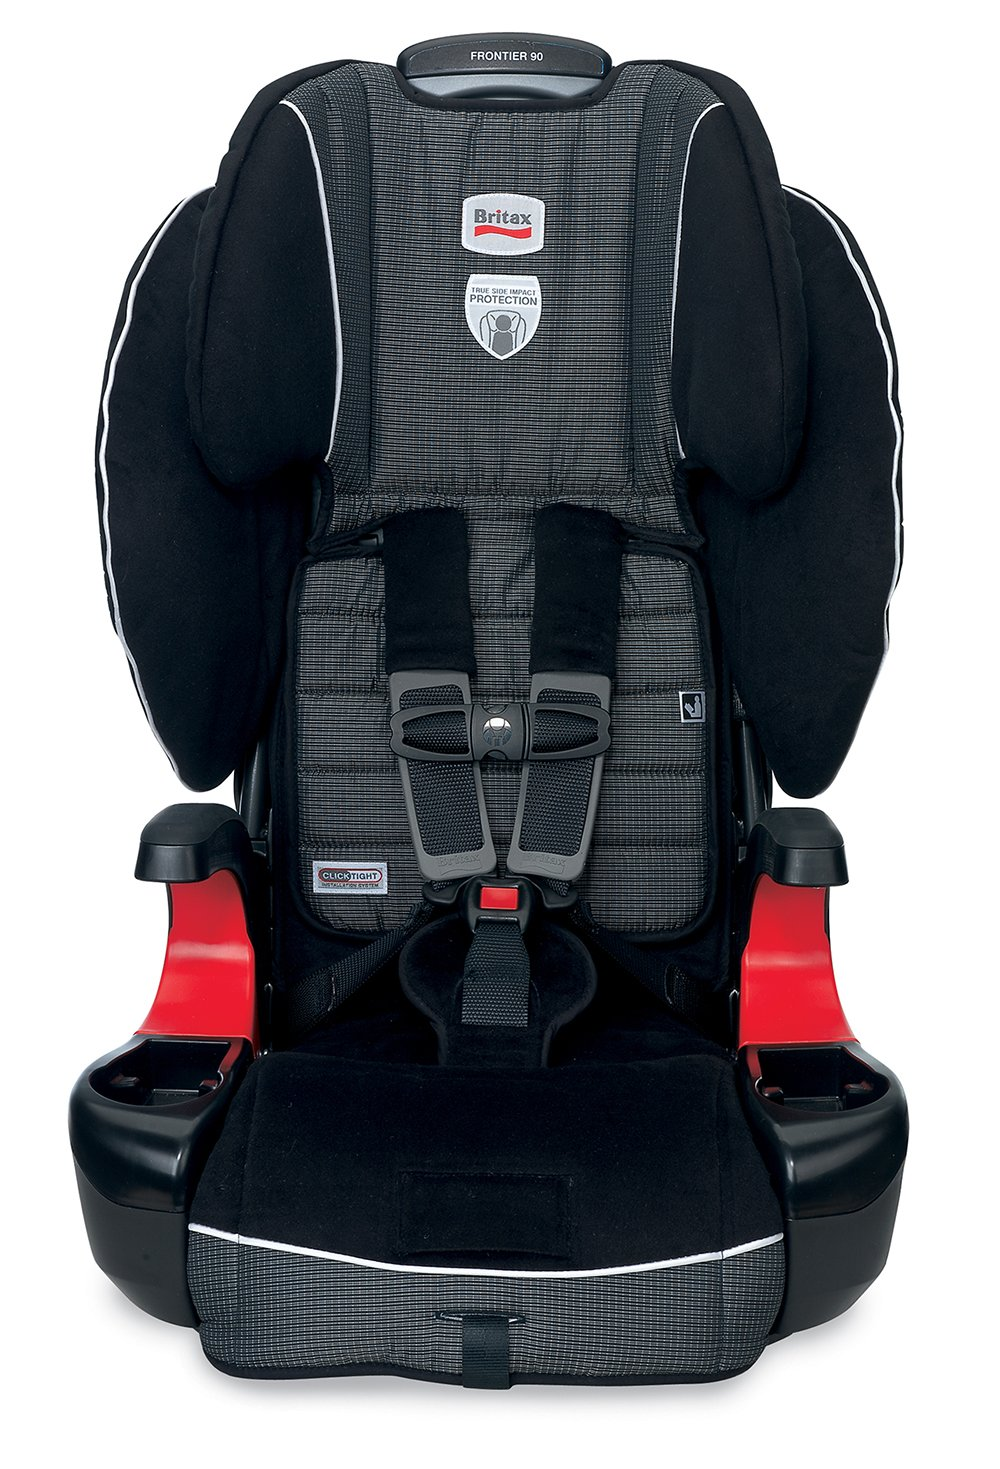 Recommended Car Booster Seats